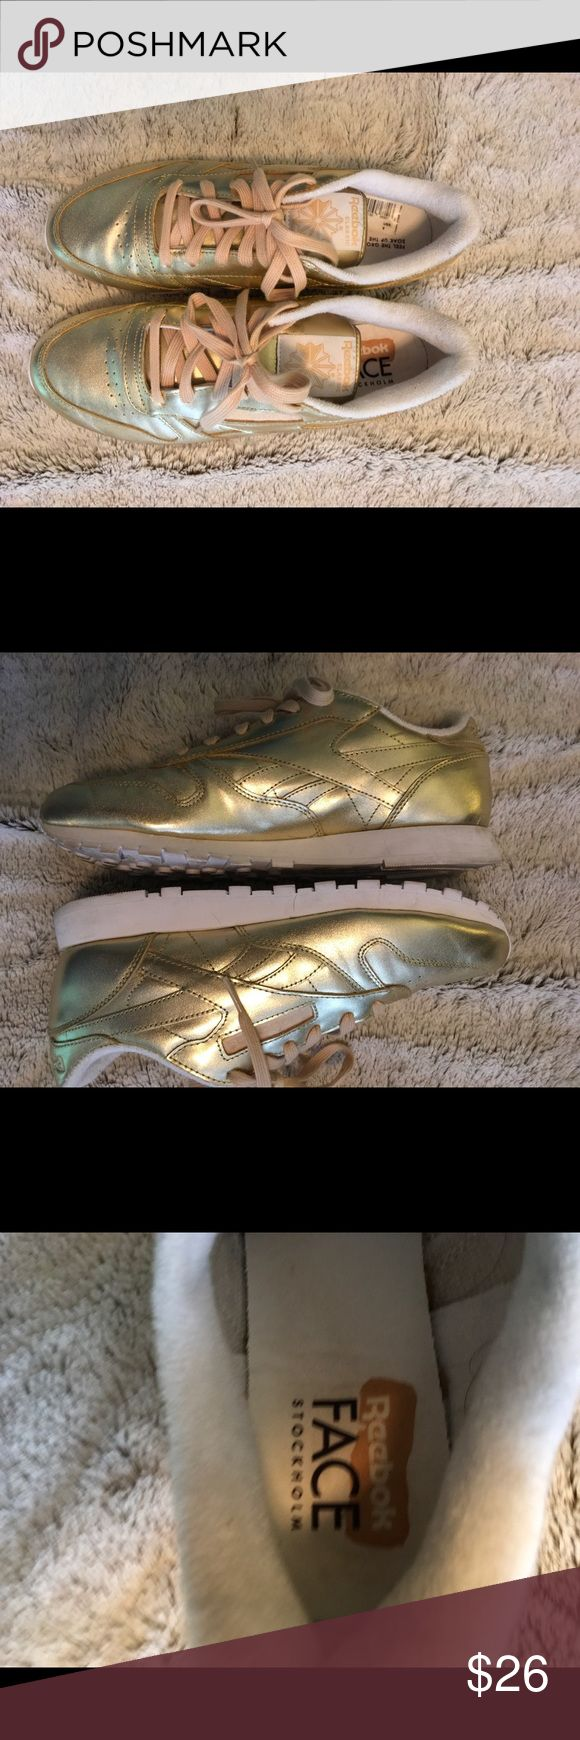 Gold reebok sneakers Size 9 excellent condition Reebok Shoes Sneakers